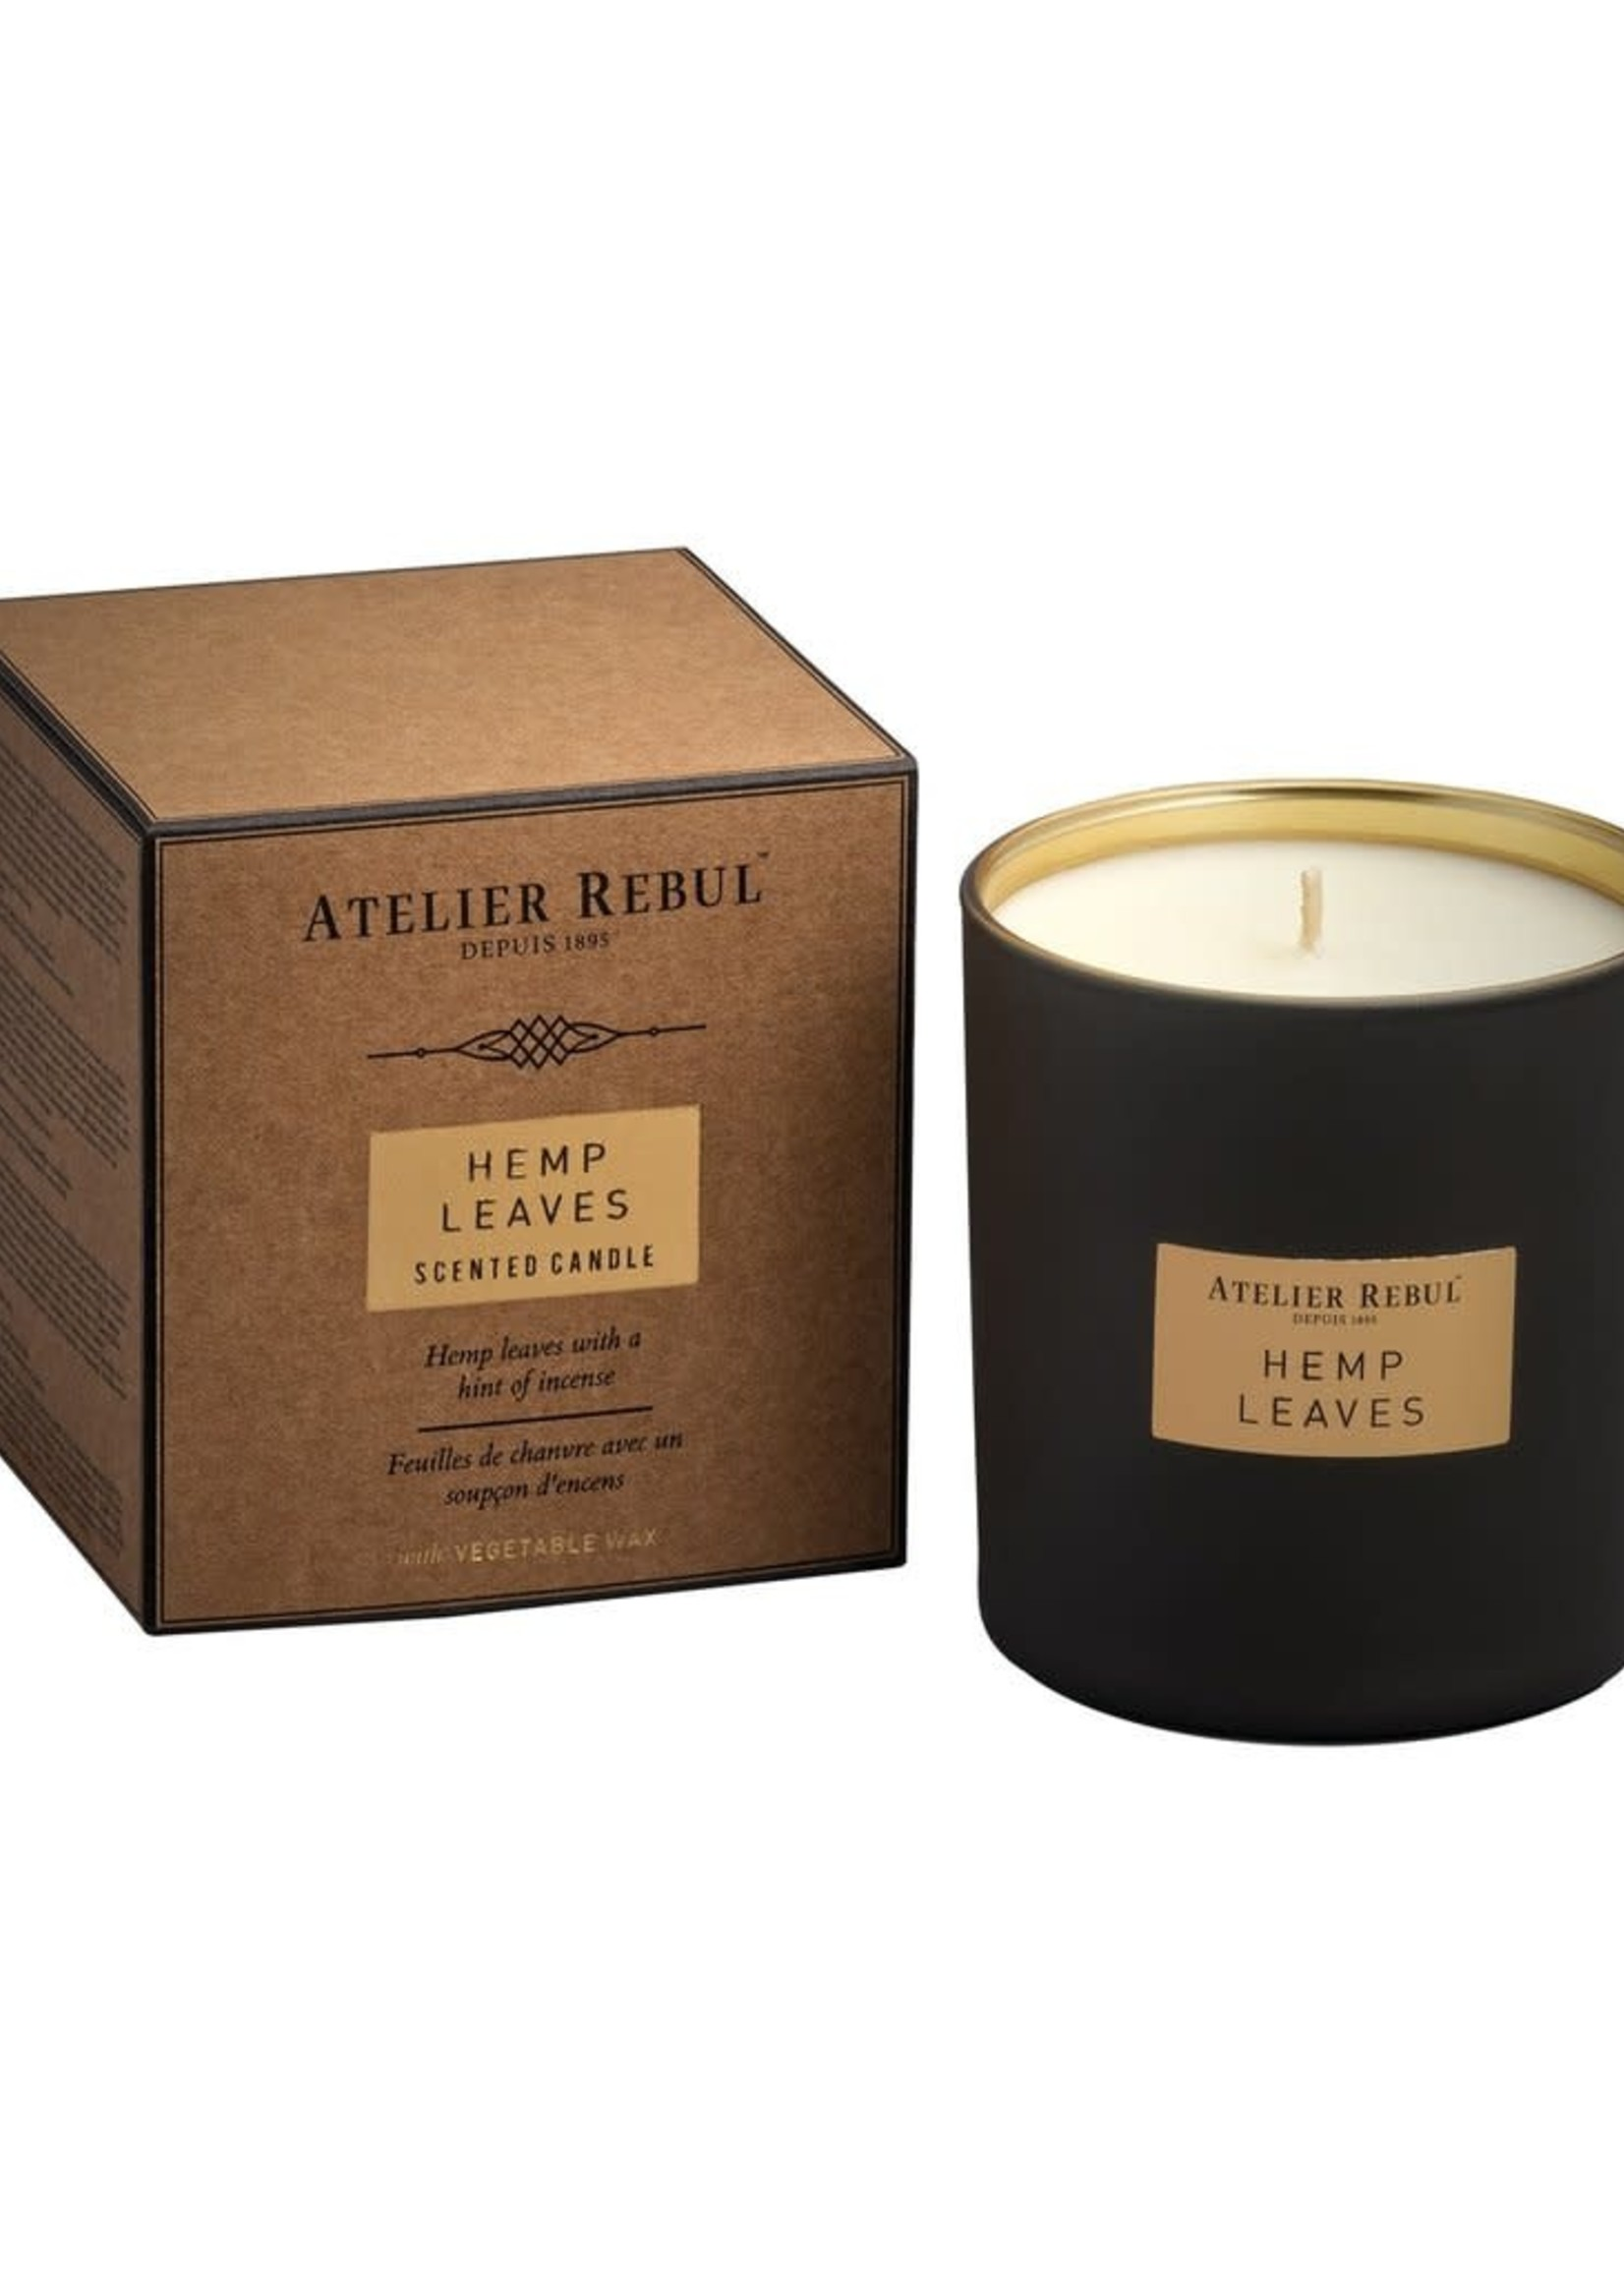 Atelier Rebul Hemp Leaves Scented Candle 210gr